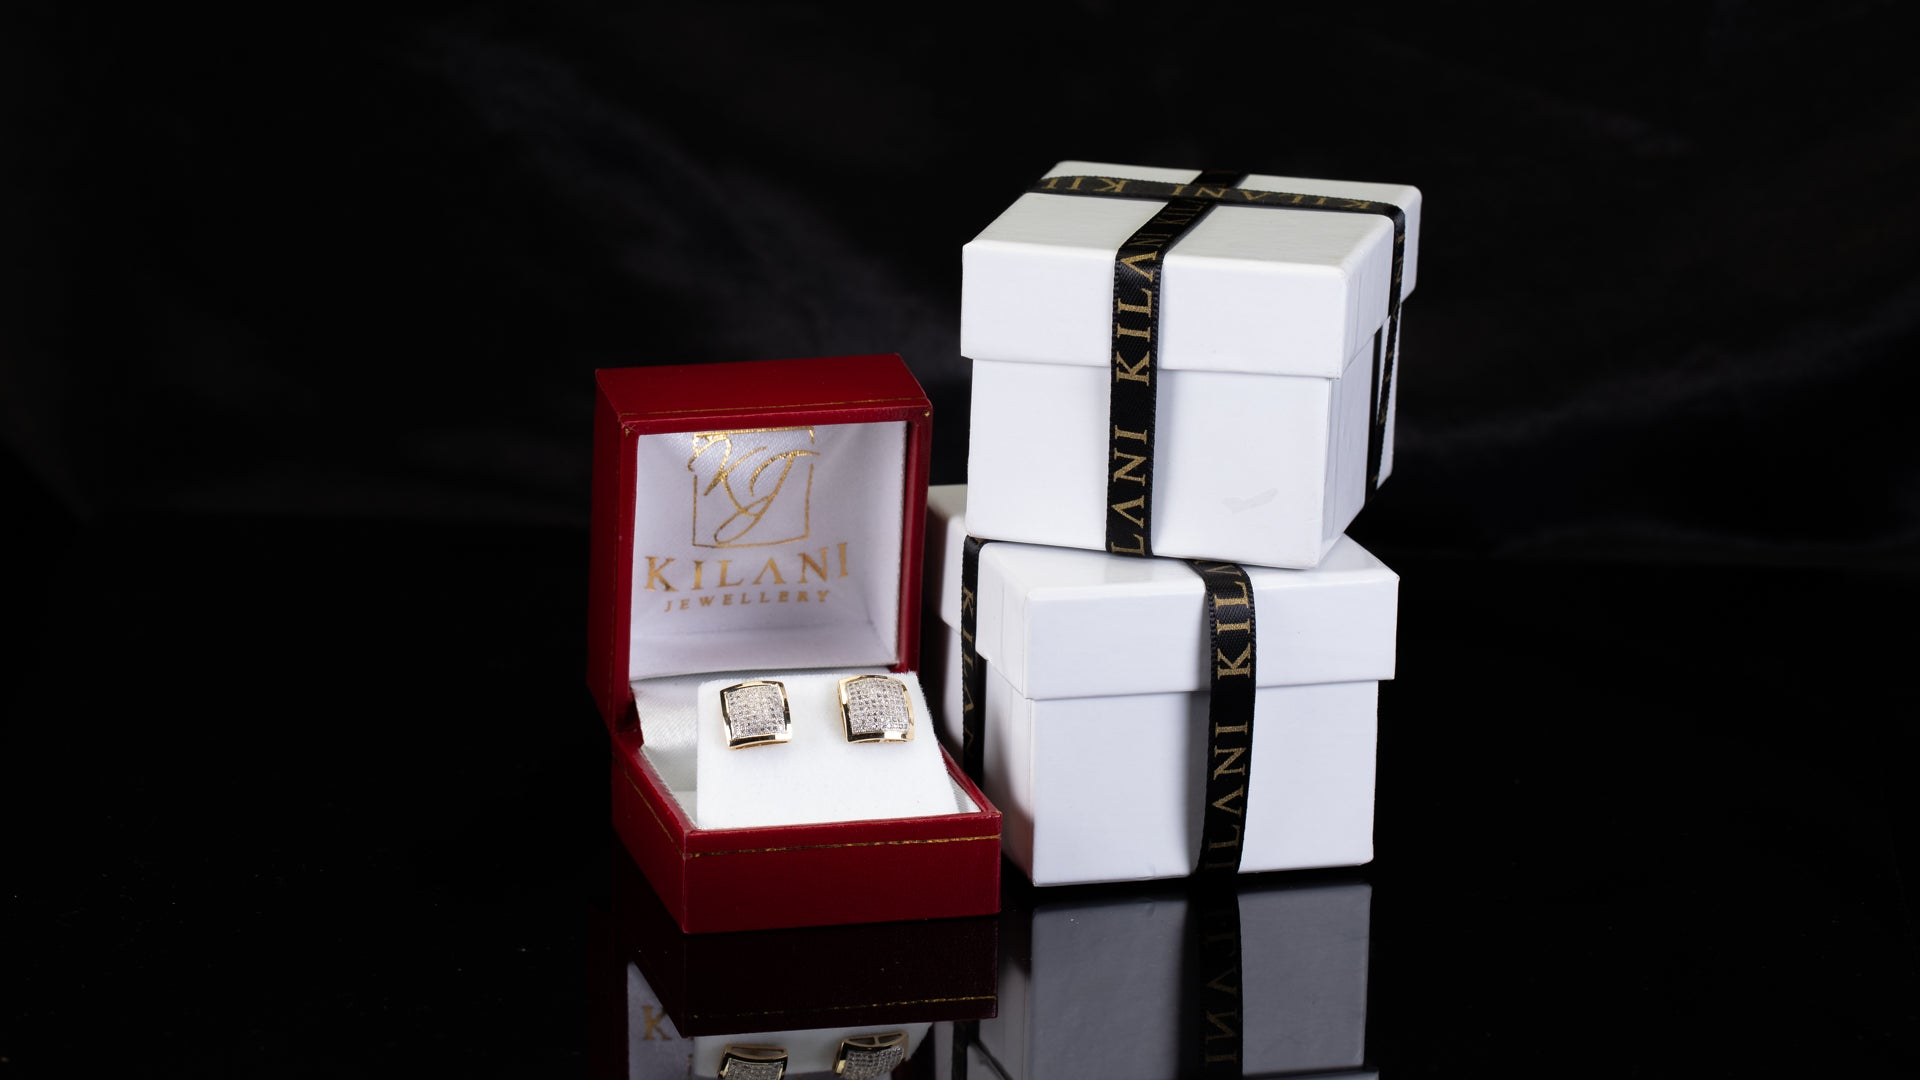 [SPECIAL] 10k Yellow Gold Outward Square Frame Diamond Earrings